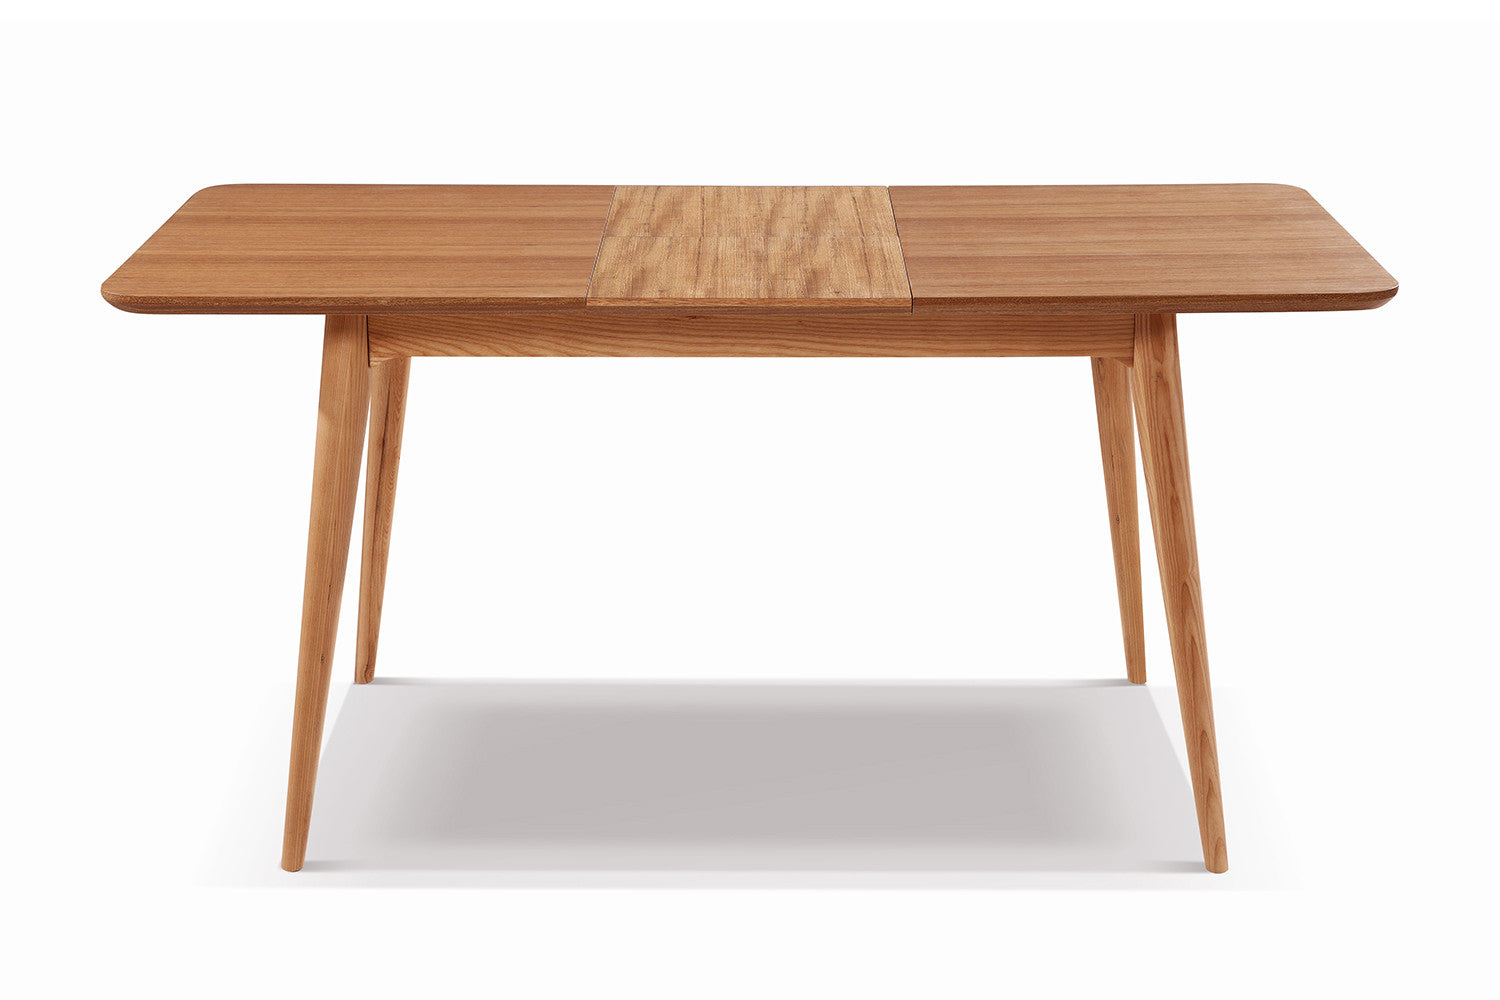 Table de salle manger extensible en bois adda dewarens for Table de salle a manger retractable